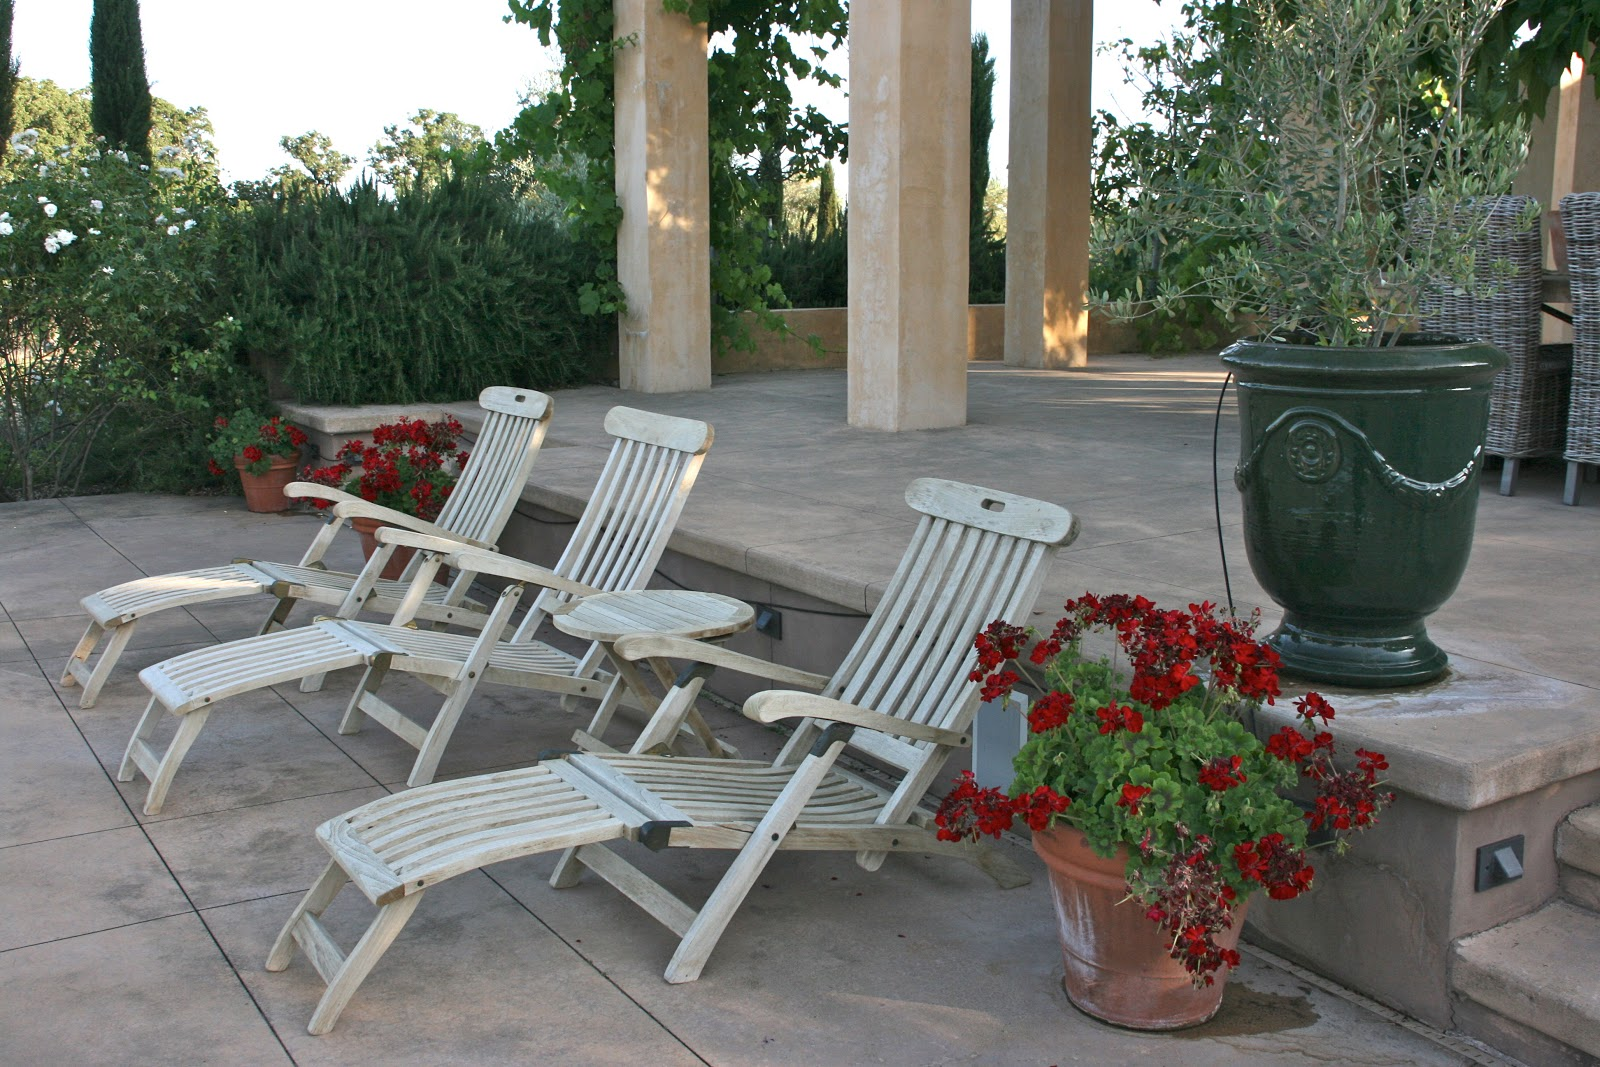 Vignette Design An Outdoor Furniture Restoration Project